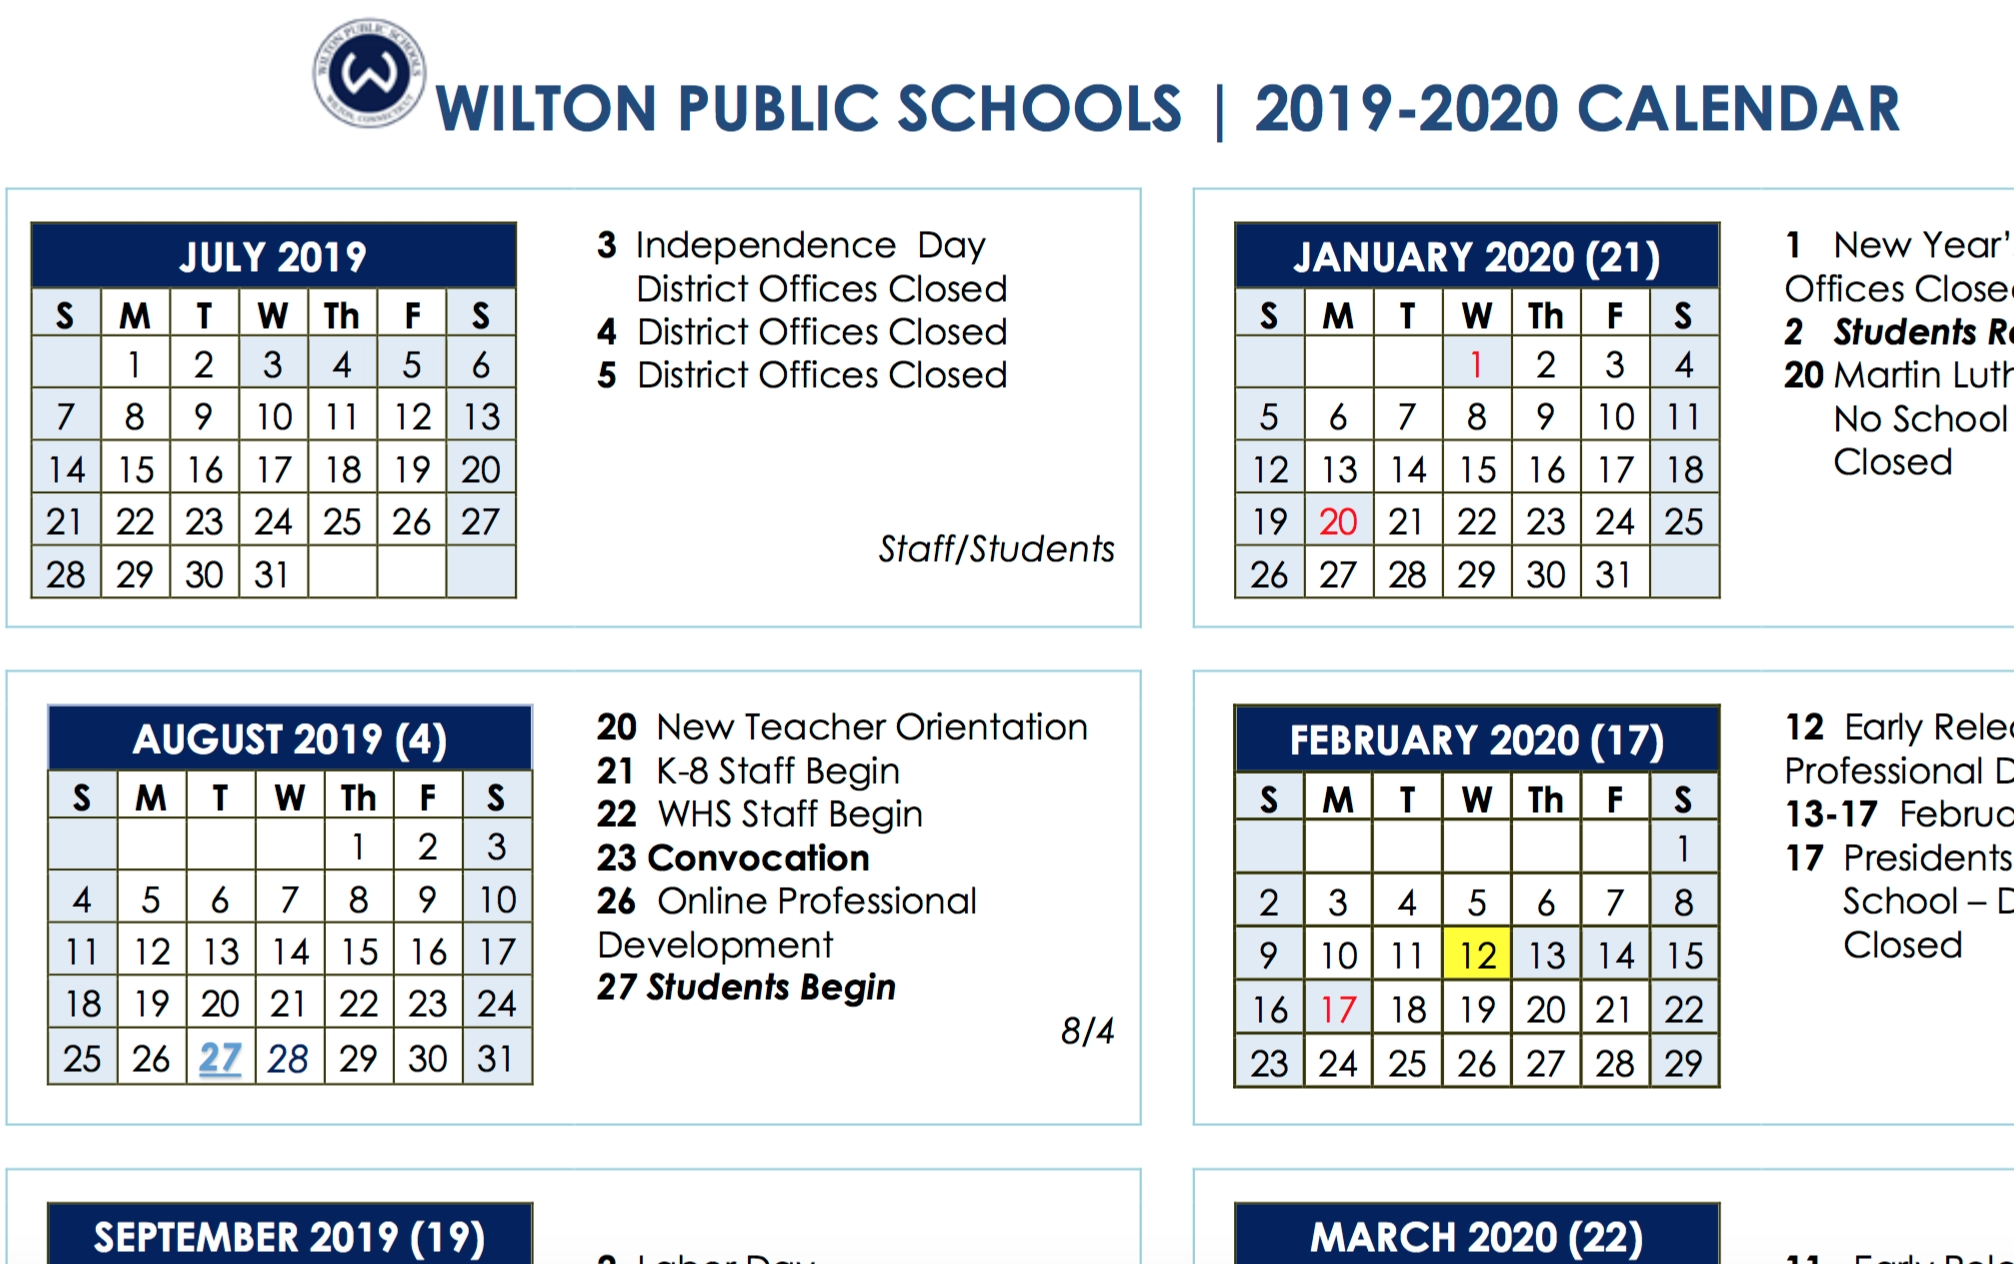 Board Of Education Approves 2019-2020 And 2020-2021 School Year_District 6 School Calendar 2020